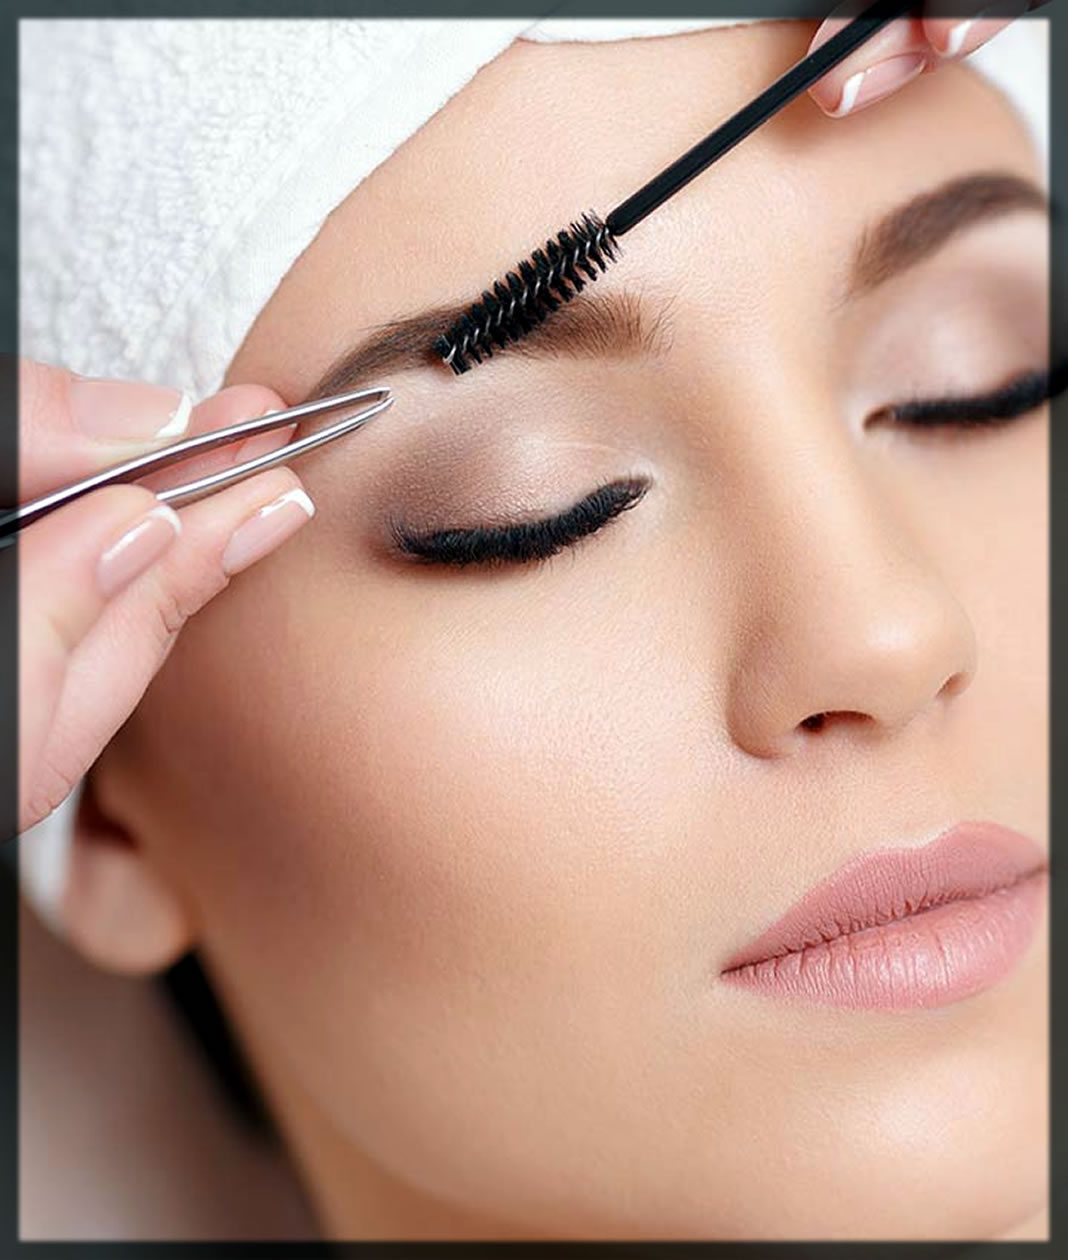 How To Shape Your Eyebrows perfectly